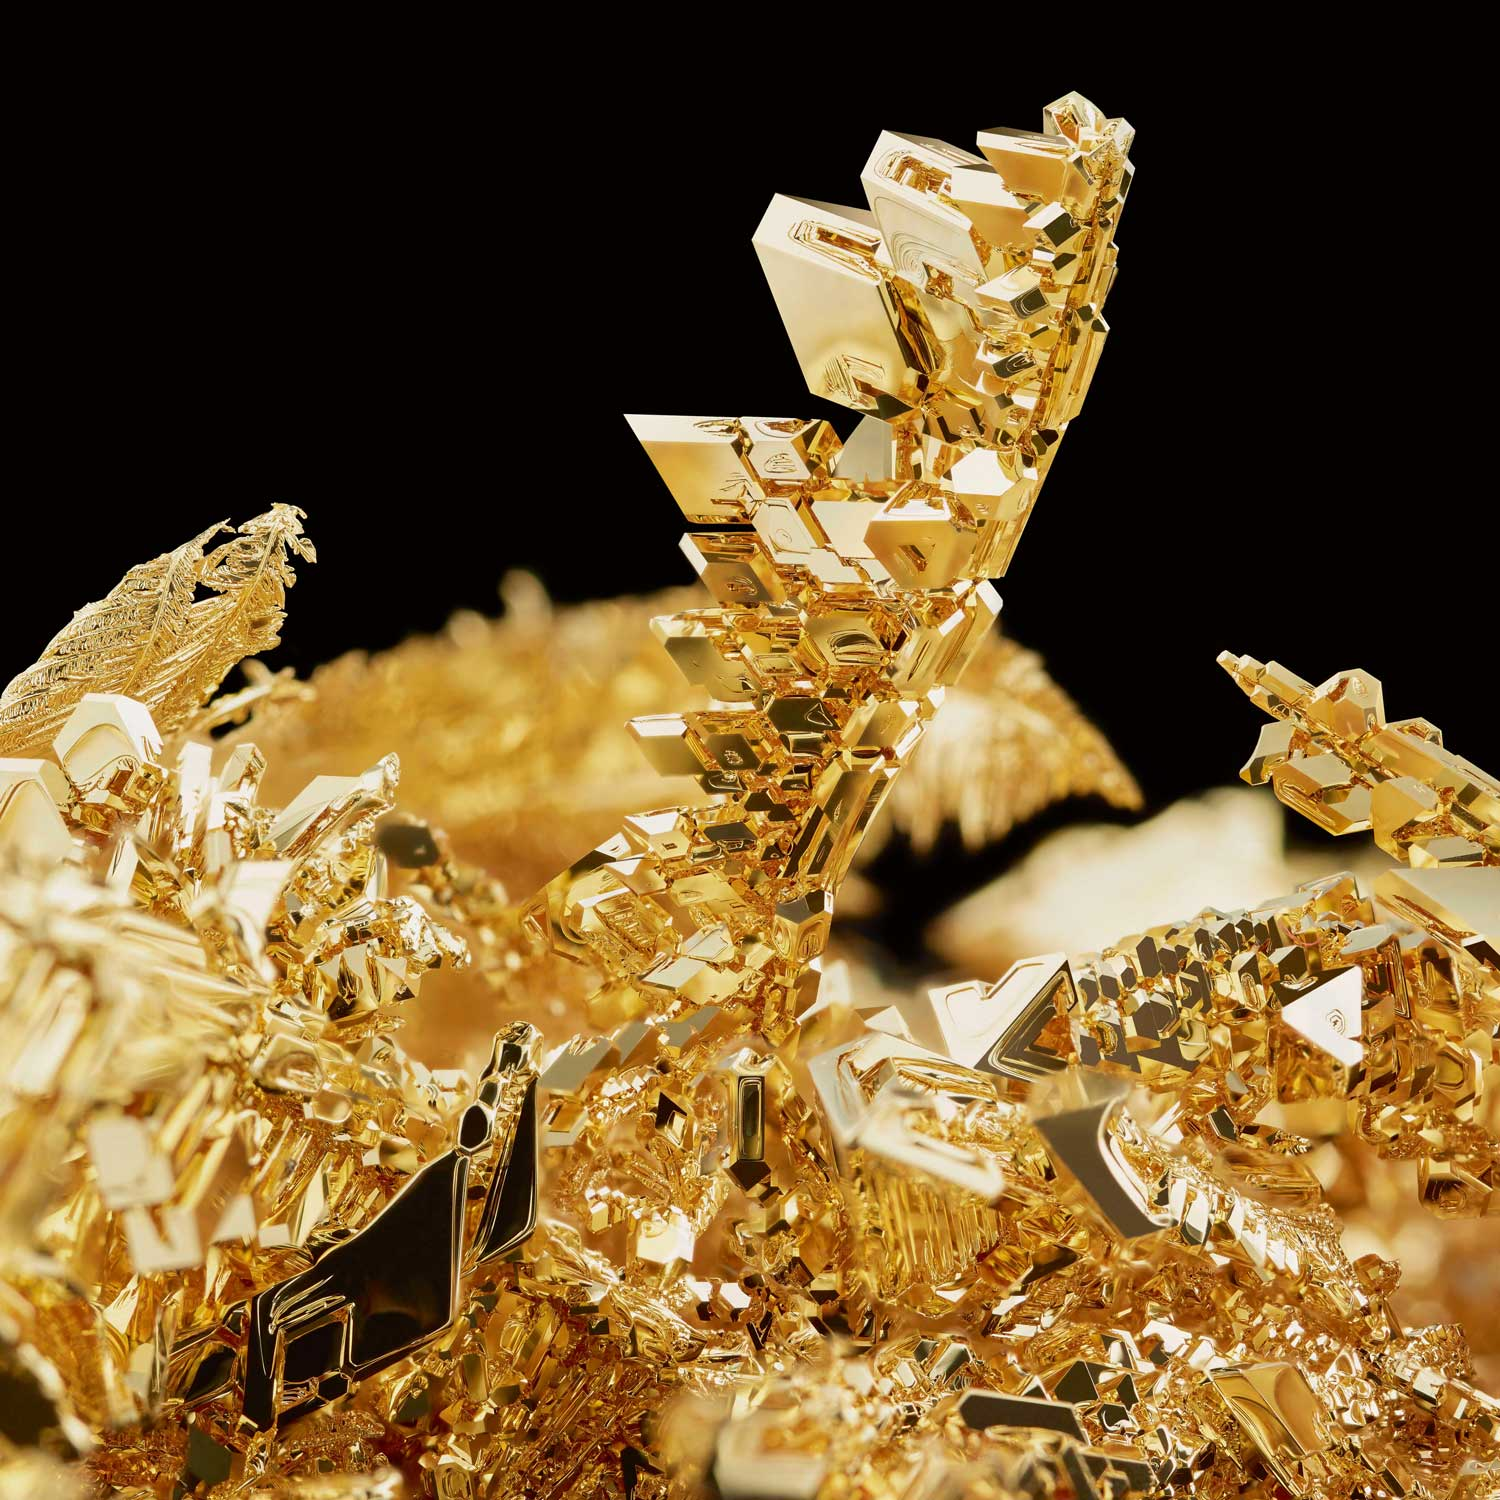 Crystallised gold, a rare natural gold formation, is mimicked by Hublot through modern technology.